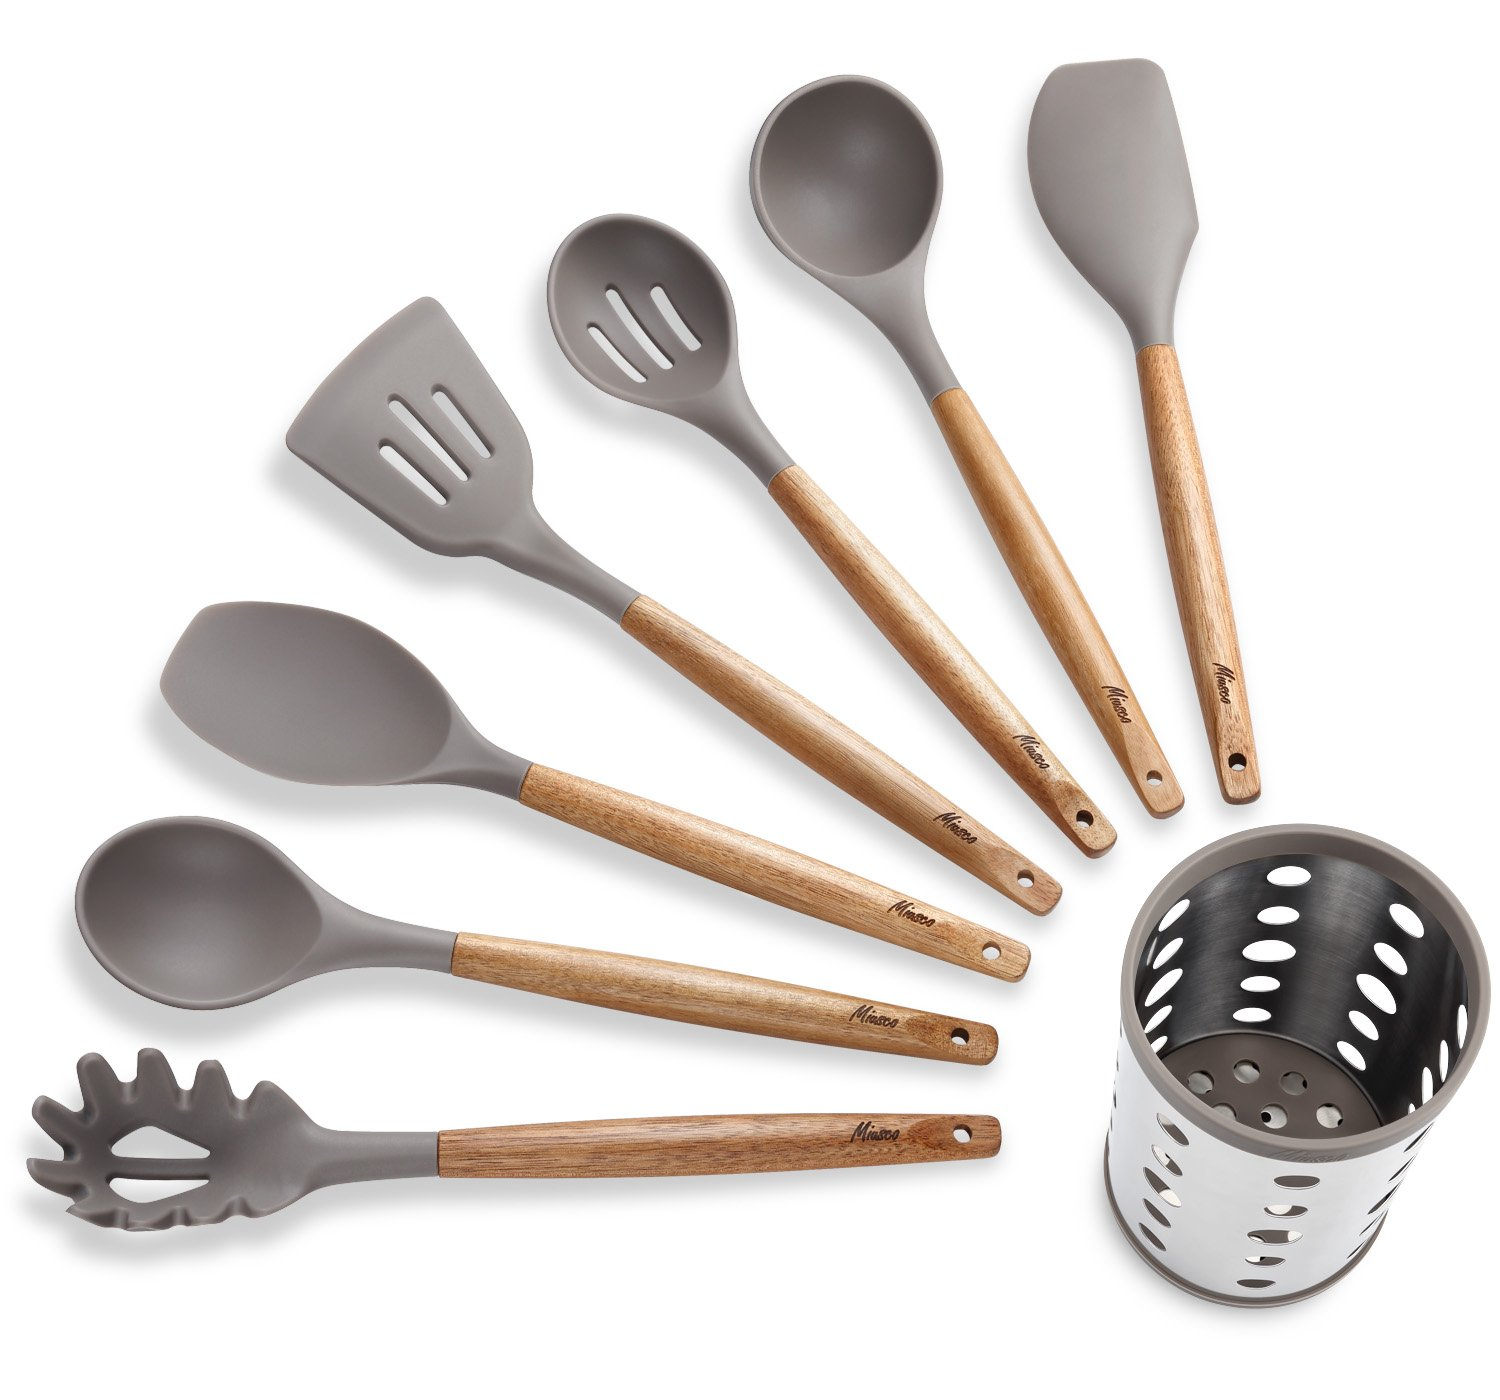 Miusco 7 Piece Silicone Cooking Utensil Set with Natural Acacia Hard Wood Handle and Stainless Steel Utensil Holder